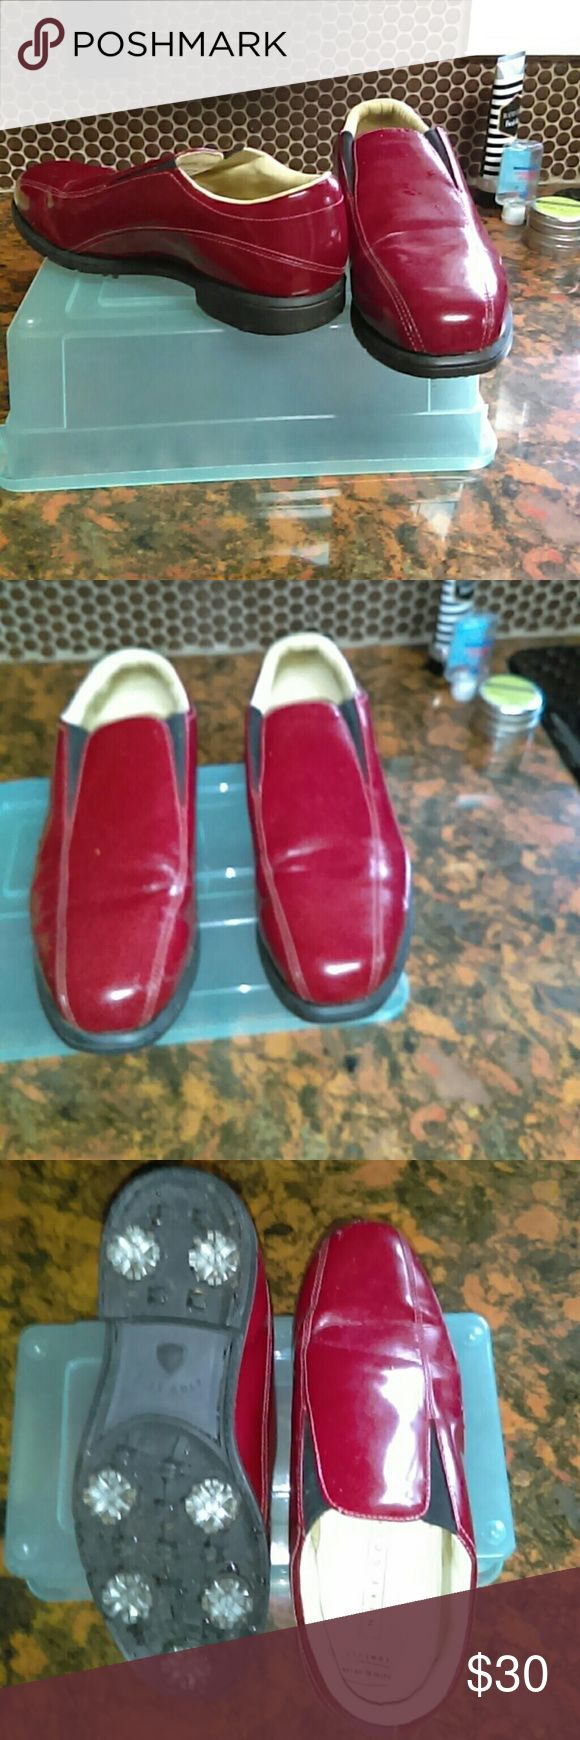 Women's NIKE GOLF SHOES Nike women's golf shoes with metal cleats.  Deep red patent leather...Great condition. Nike golf Shoes Athletic Shoes